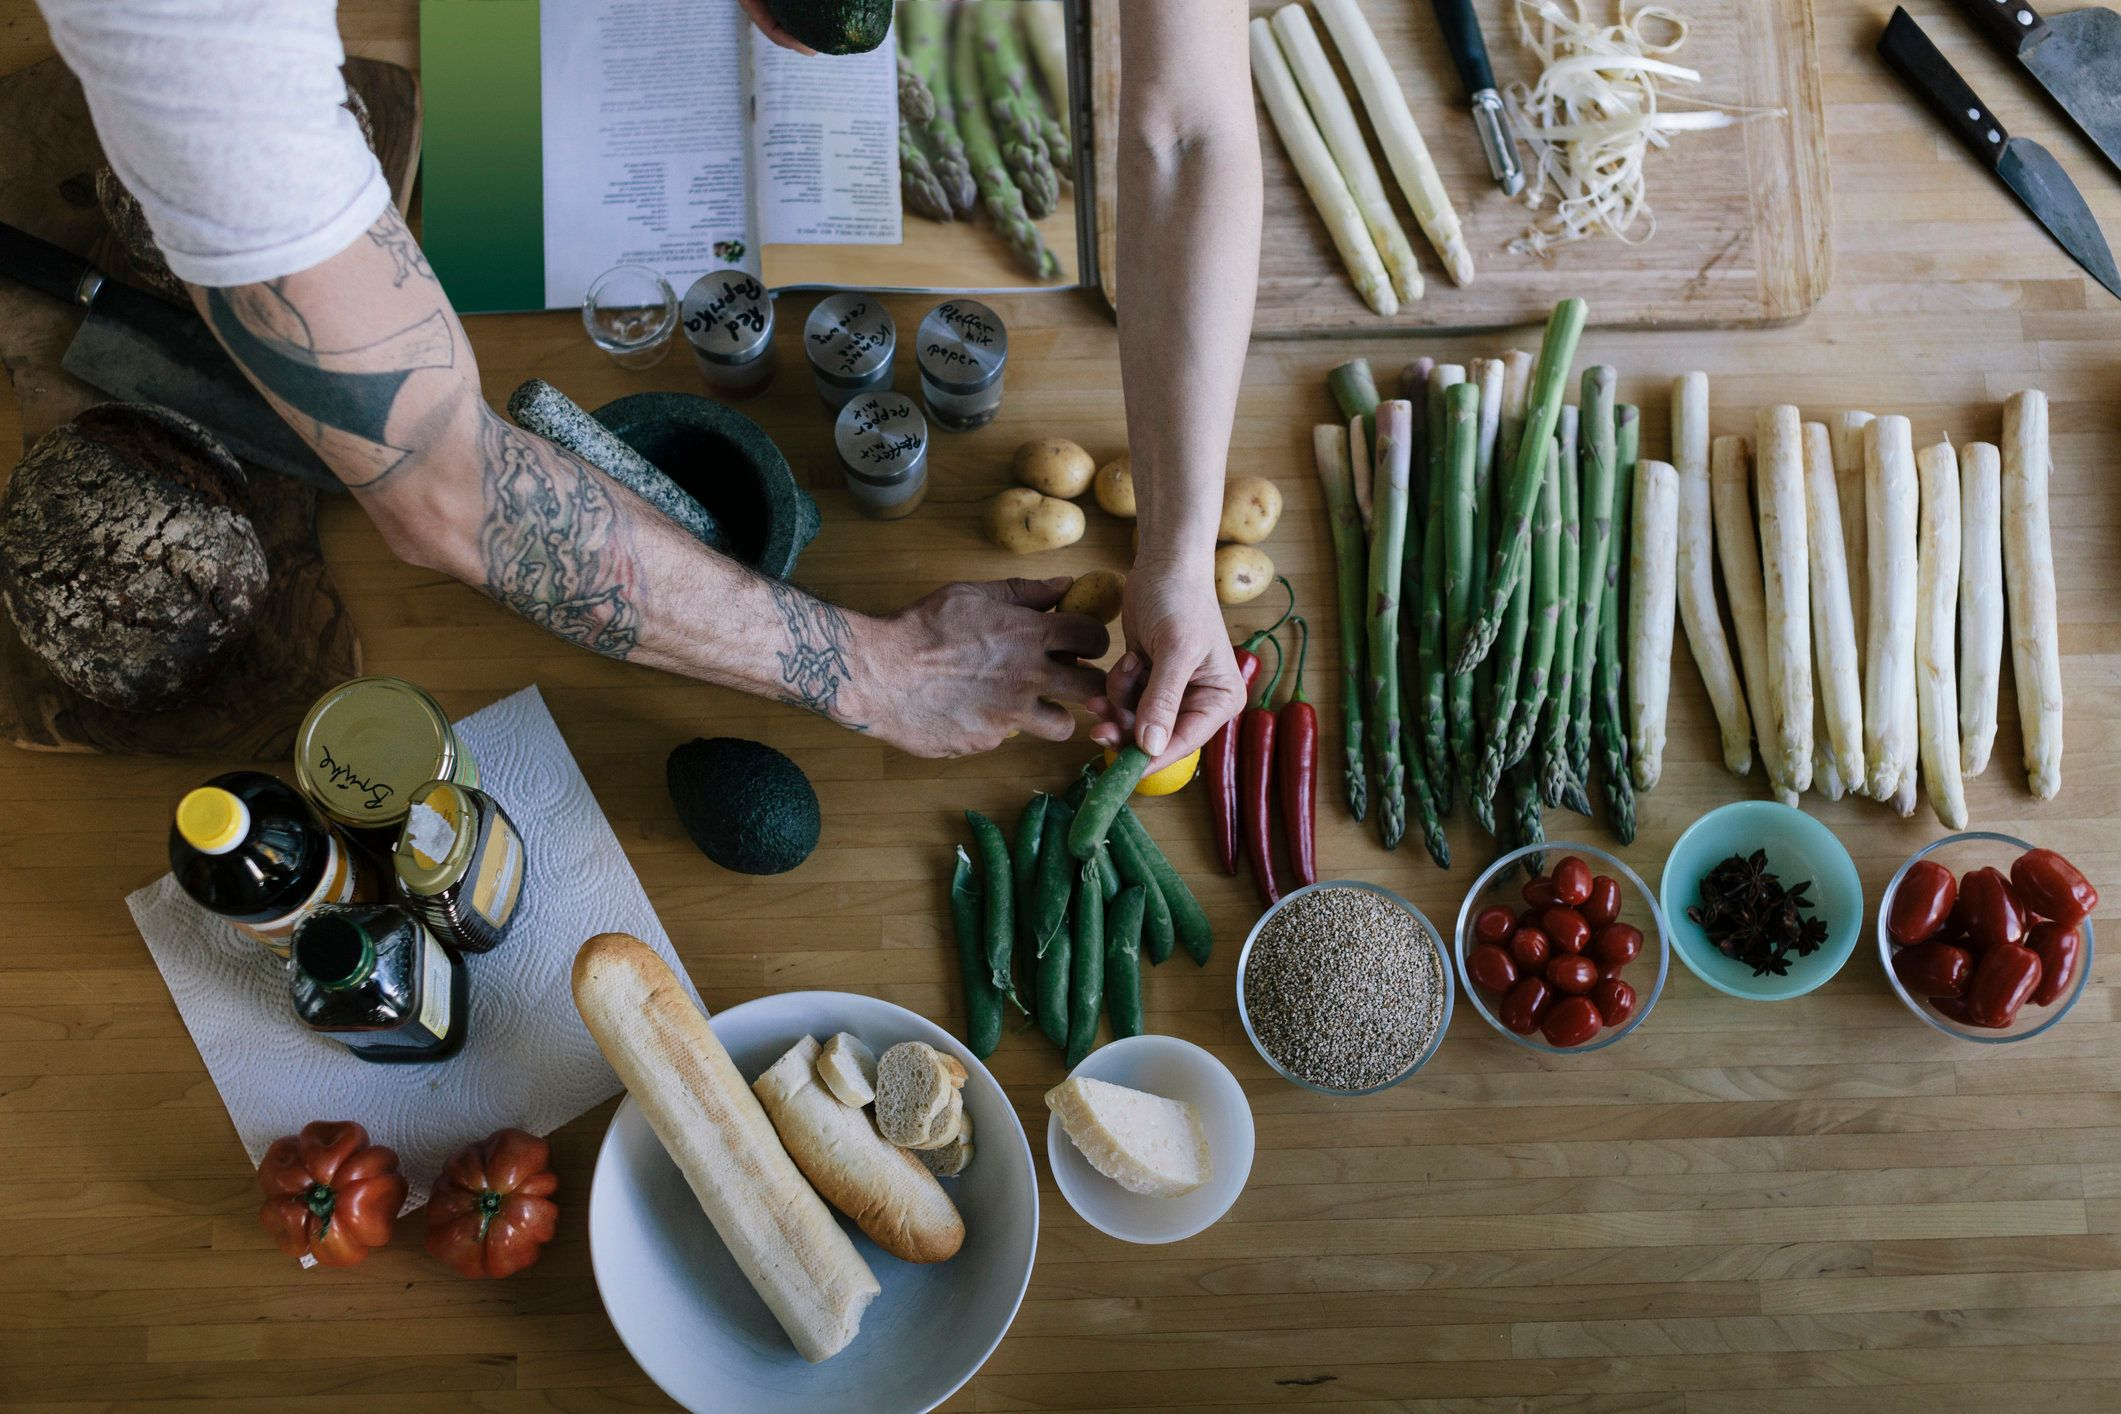 Overhead view of couple preparing food before cooking it. The view shows white and green asparagus plus other items.